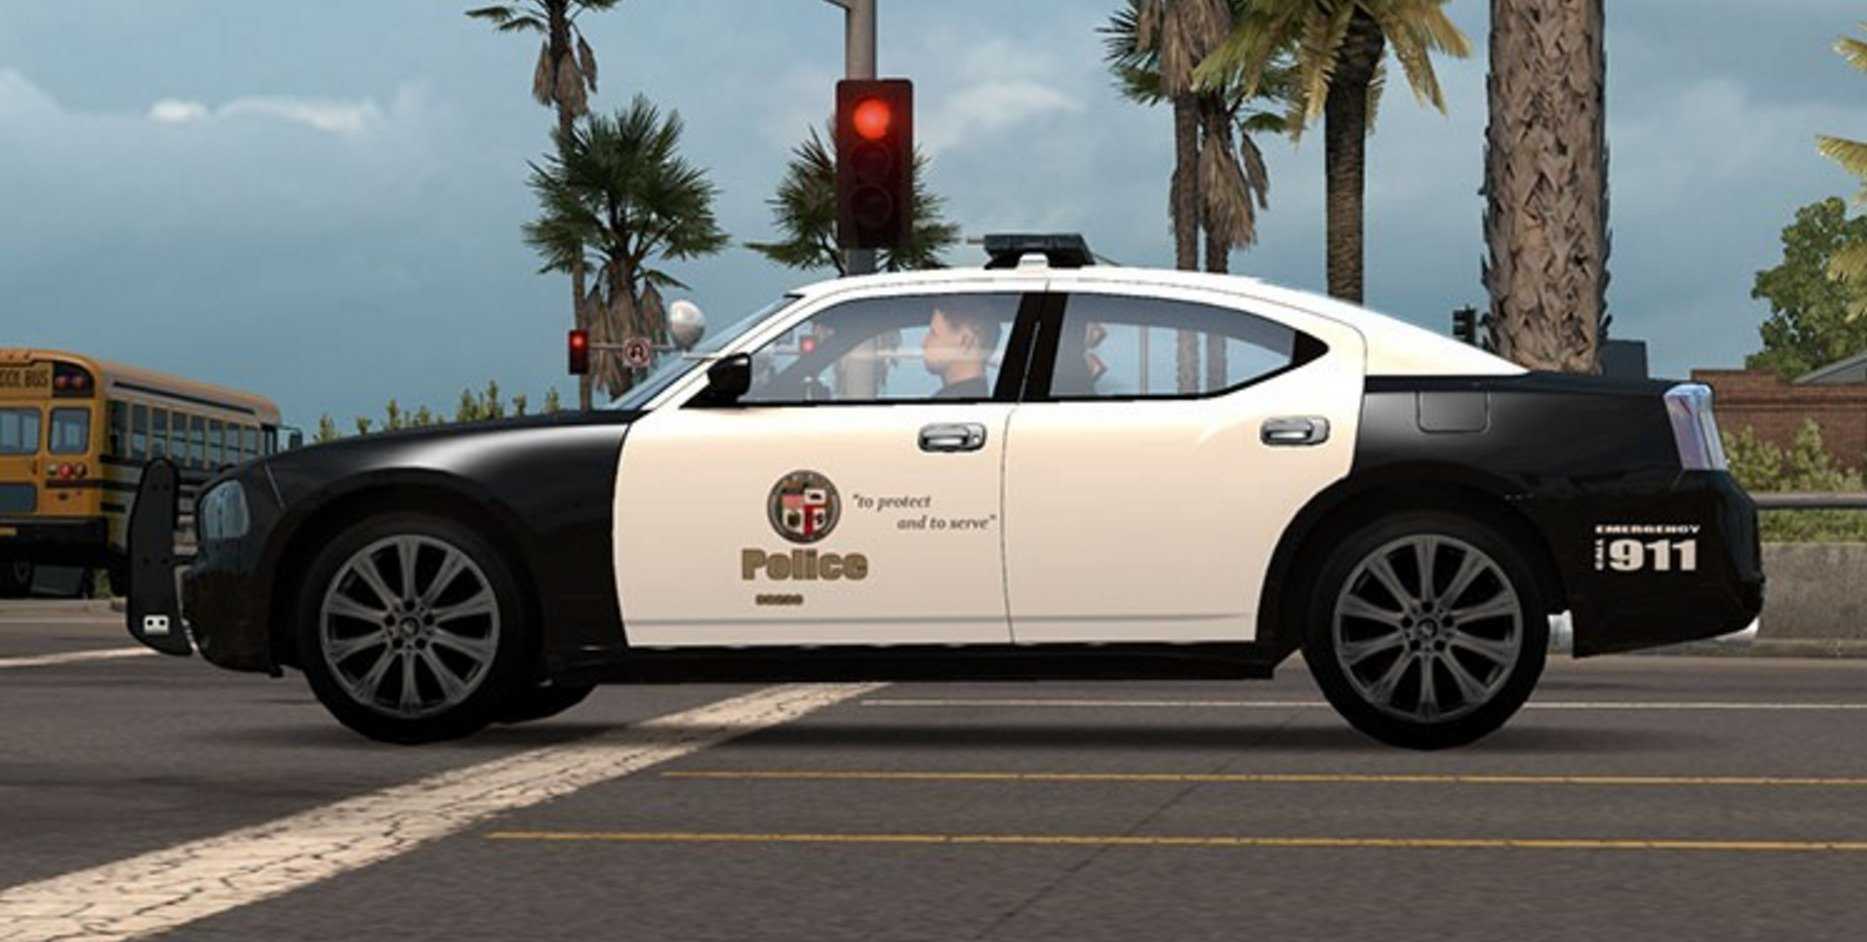 AI Police Dodge Charger